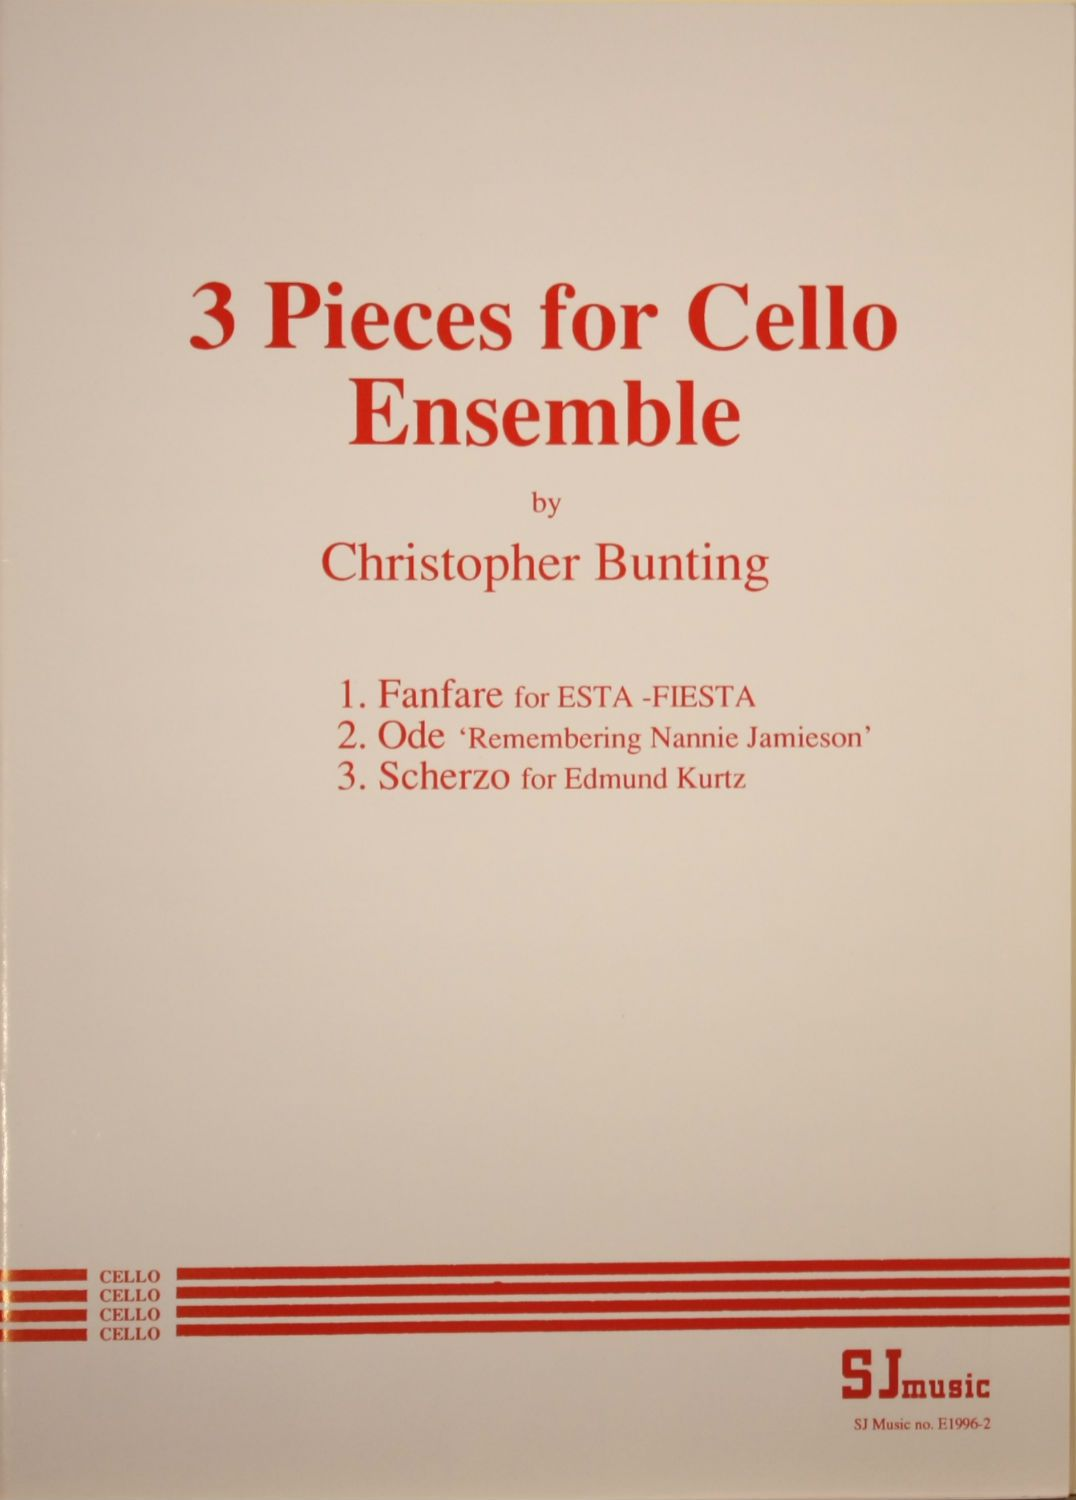 christopher bunting essay Christopher bunting christopher evelyn bunting was born in london on he wrote an essay on the craft of cello playing in 1982 and a portfolio.